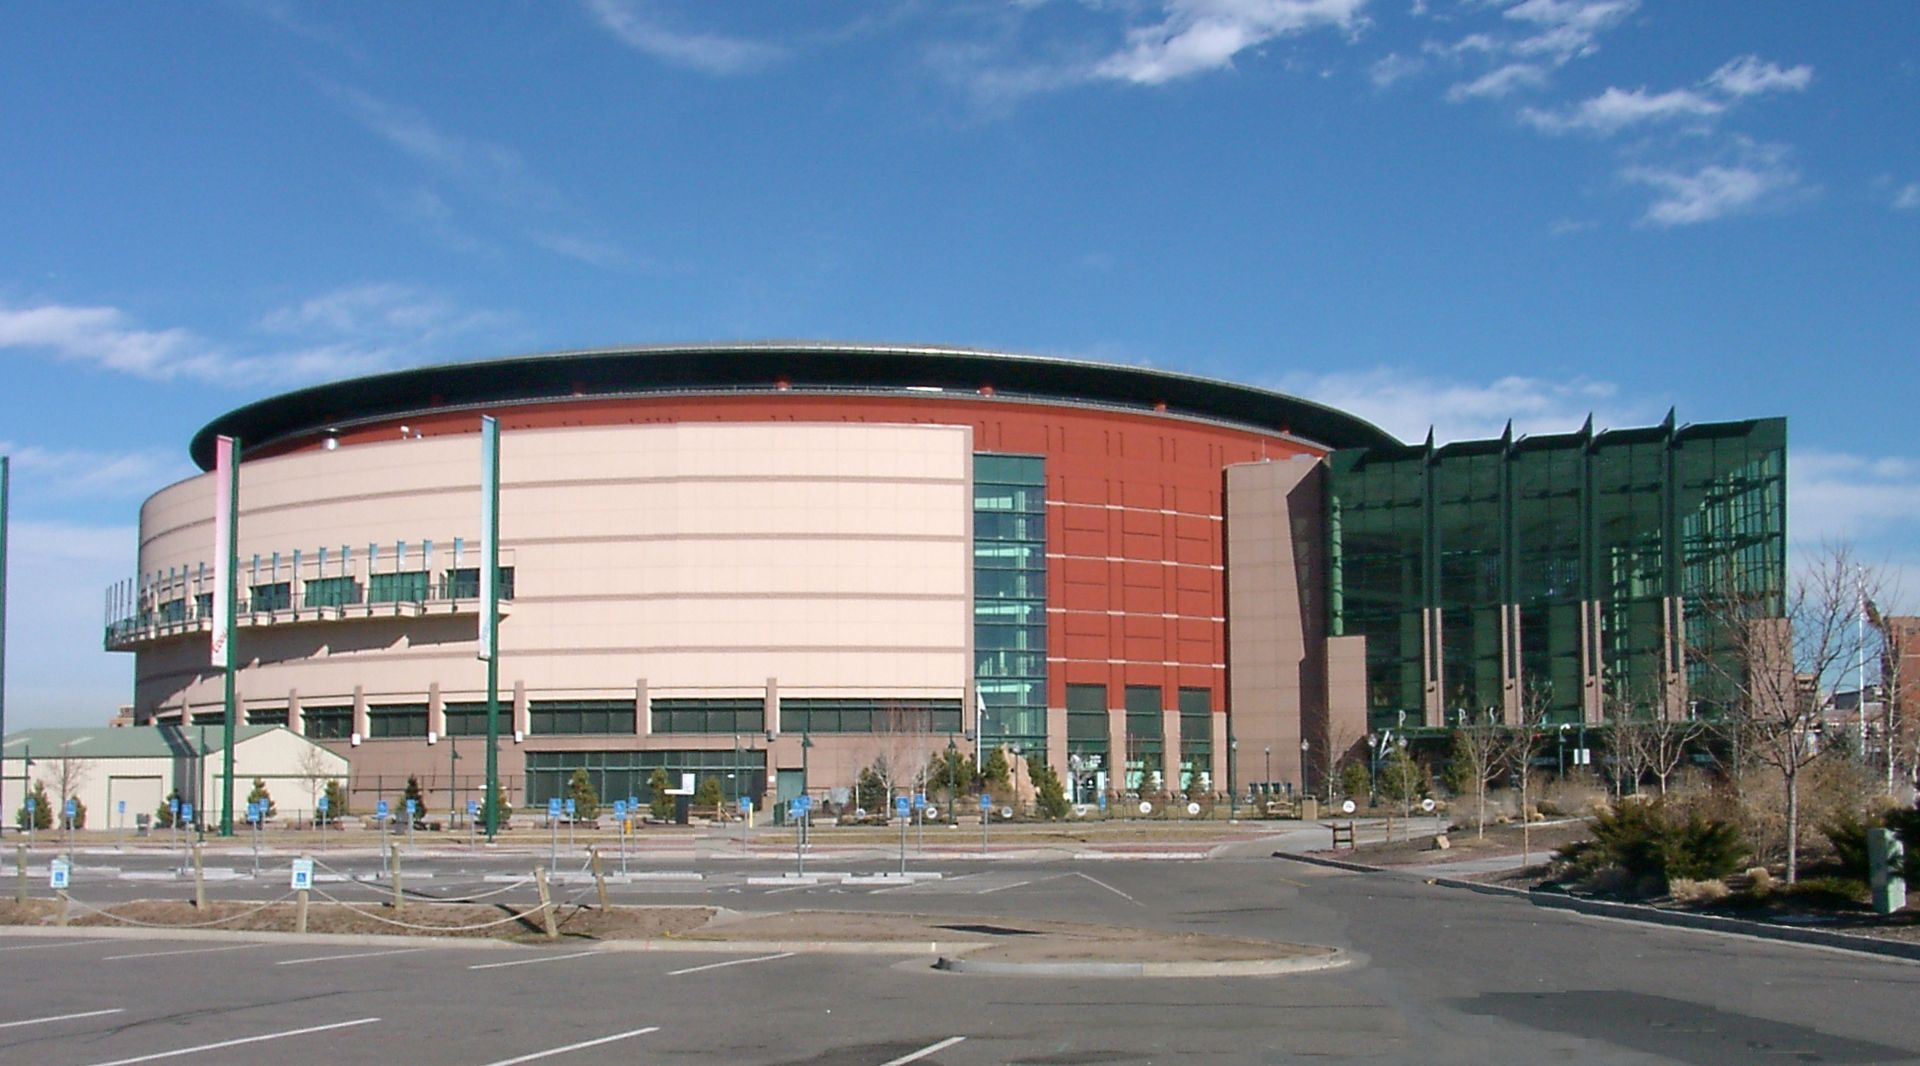 Democratic National Convention Aerial Picture Pepsi Center Arenas and Stadiums Pinterest